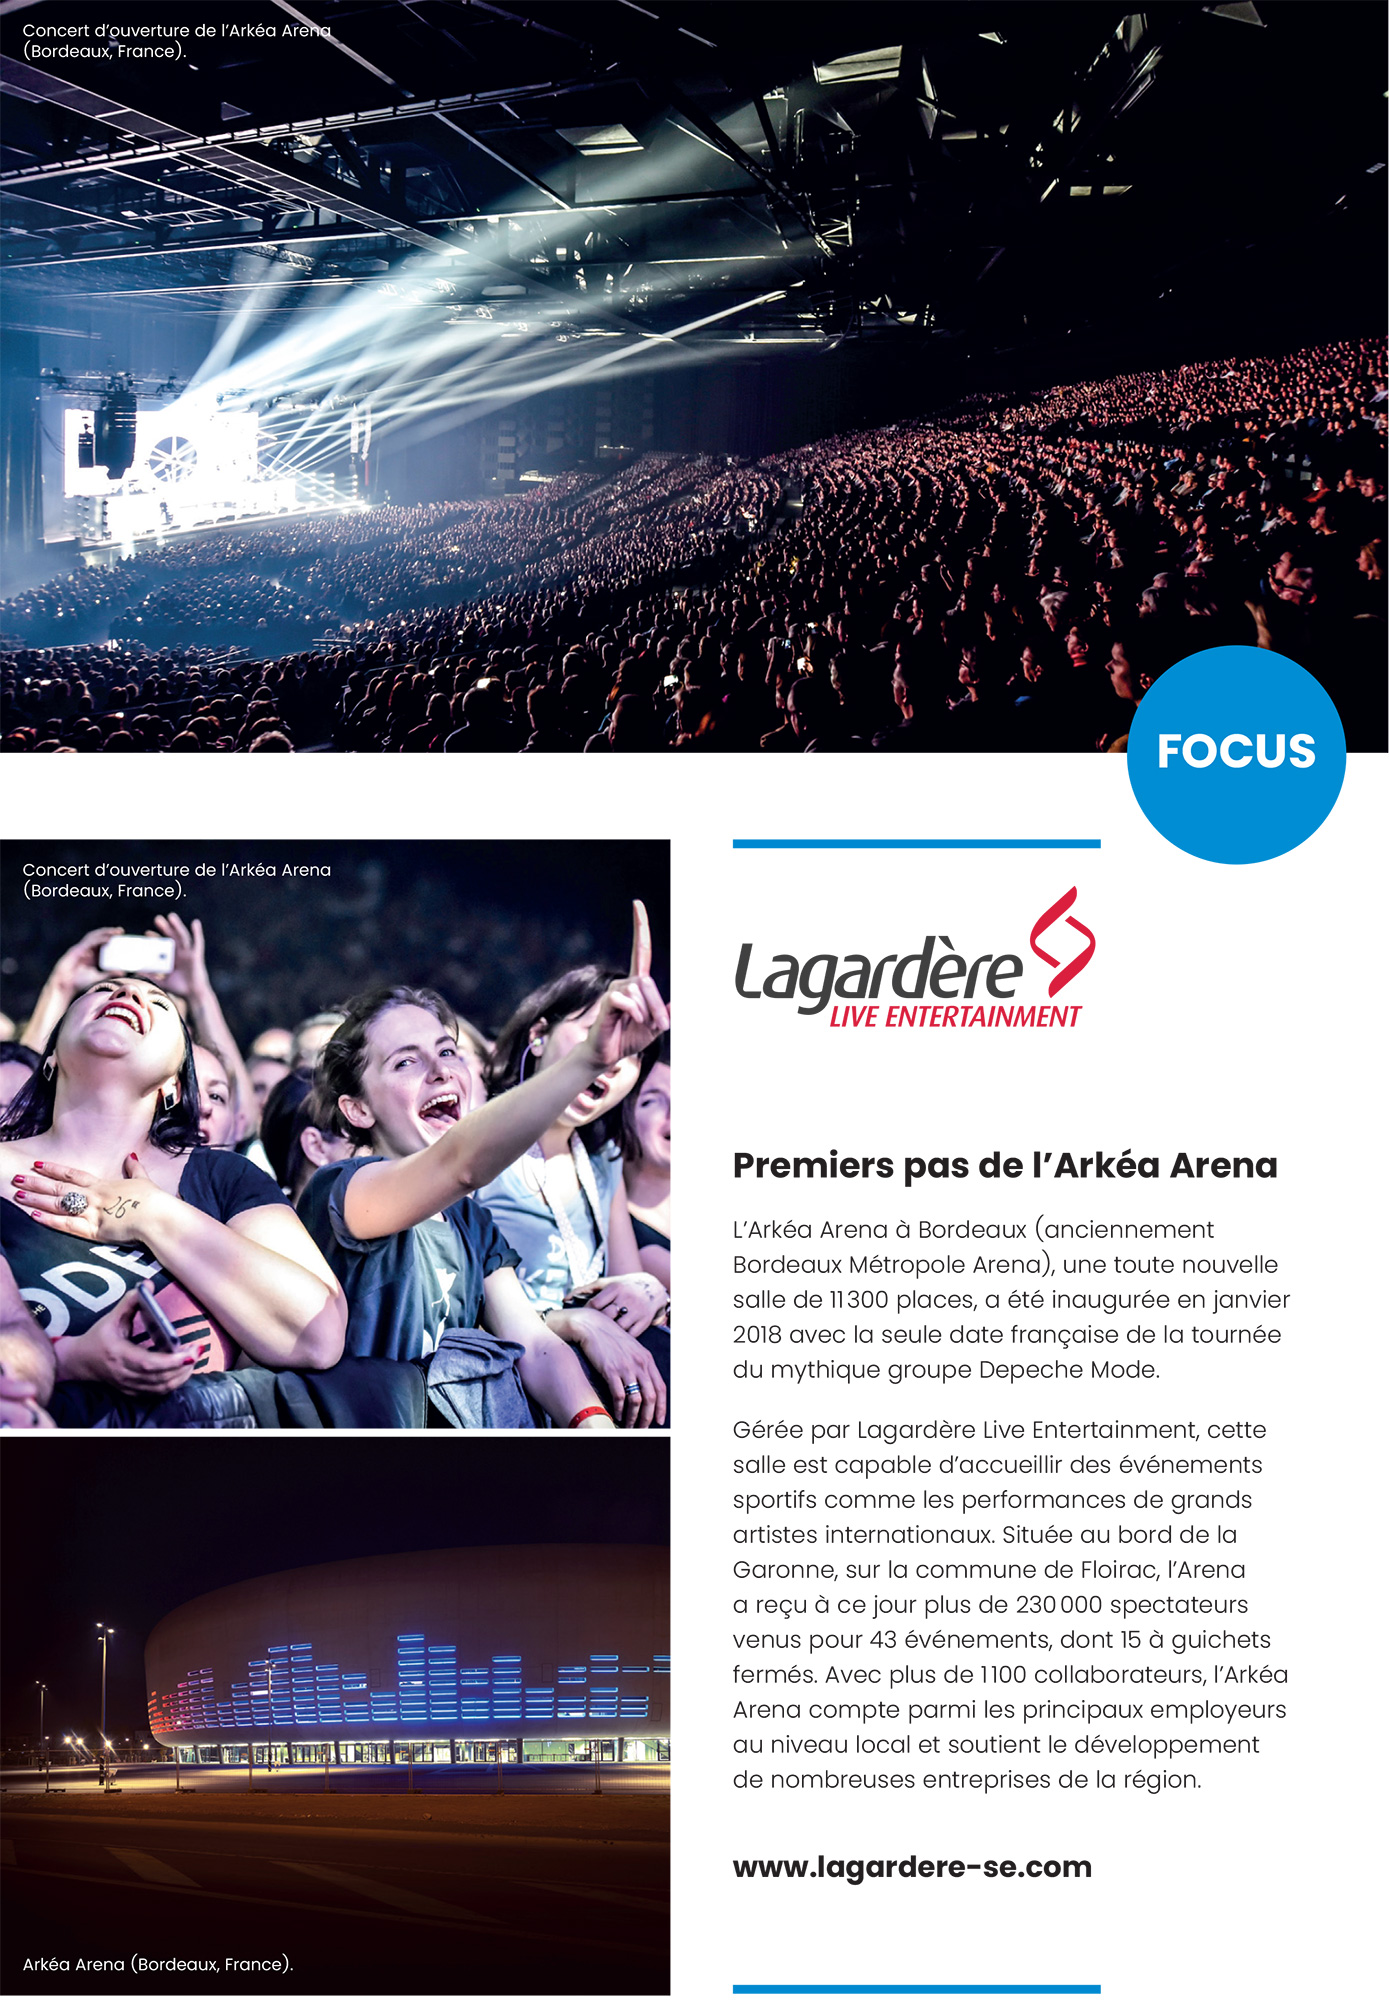 Focus Lagardère Sports and Entertainment - nouvelle fenêtre